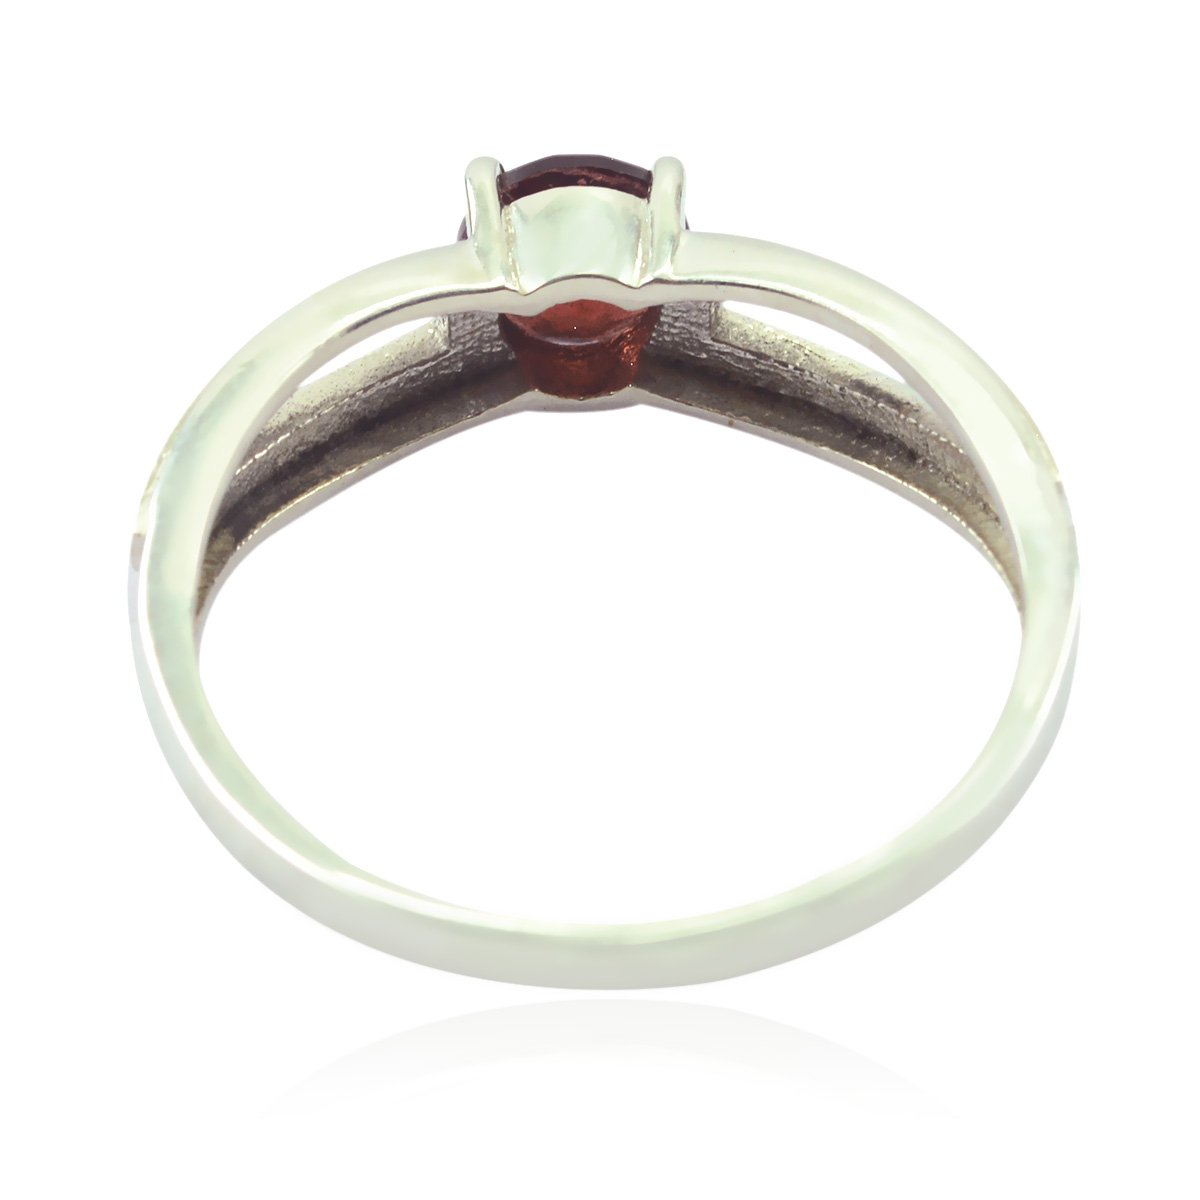 925 Sterling Silver Red Garnet Real Gemstones Ring Jewellery Most Item Gift for Wife Real Gemstones Round Faceted Garnet Ring